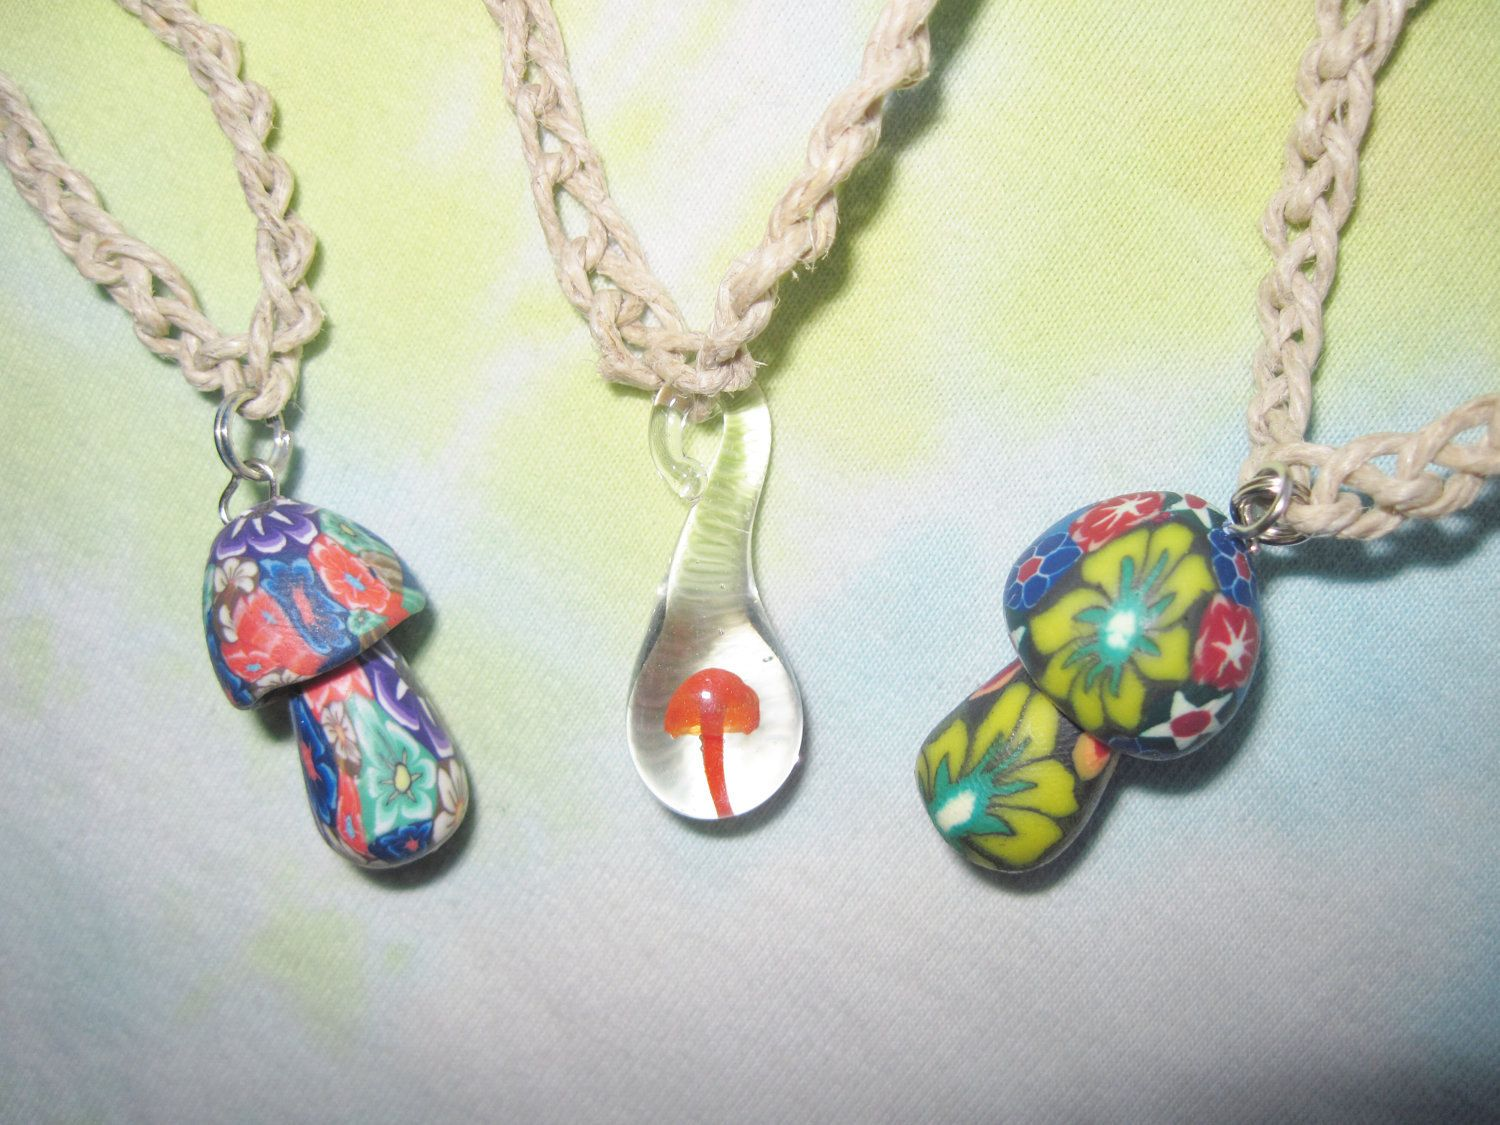 Hempnecklacesmushroomlotof3fimoglassbybeanstergoods hemp necklaces mushroom lot of 3 fimo glass pendant shrooms red psychedelic by beanstergoods on etsy mozeypictures Images